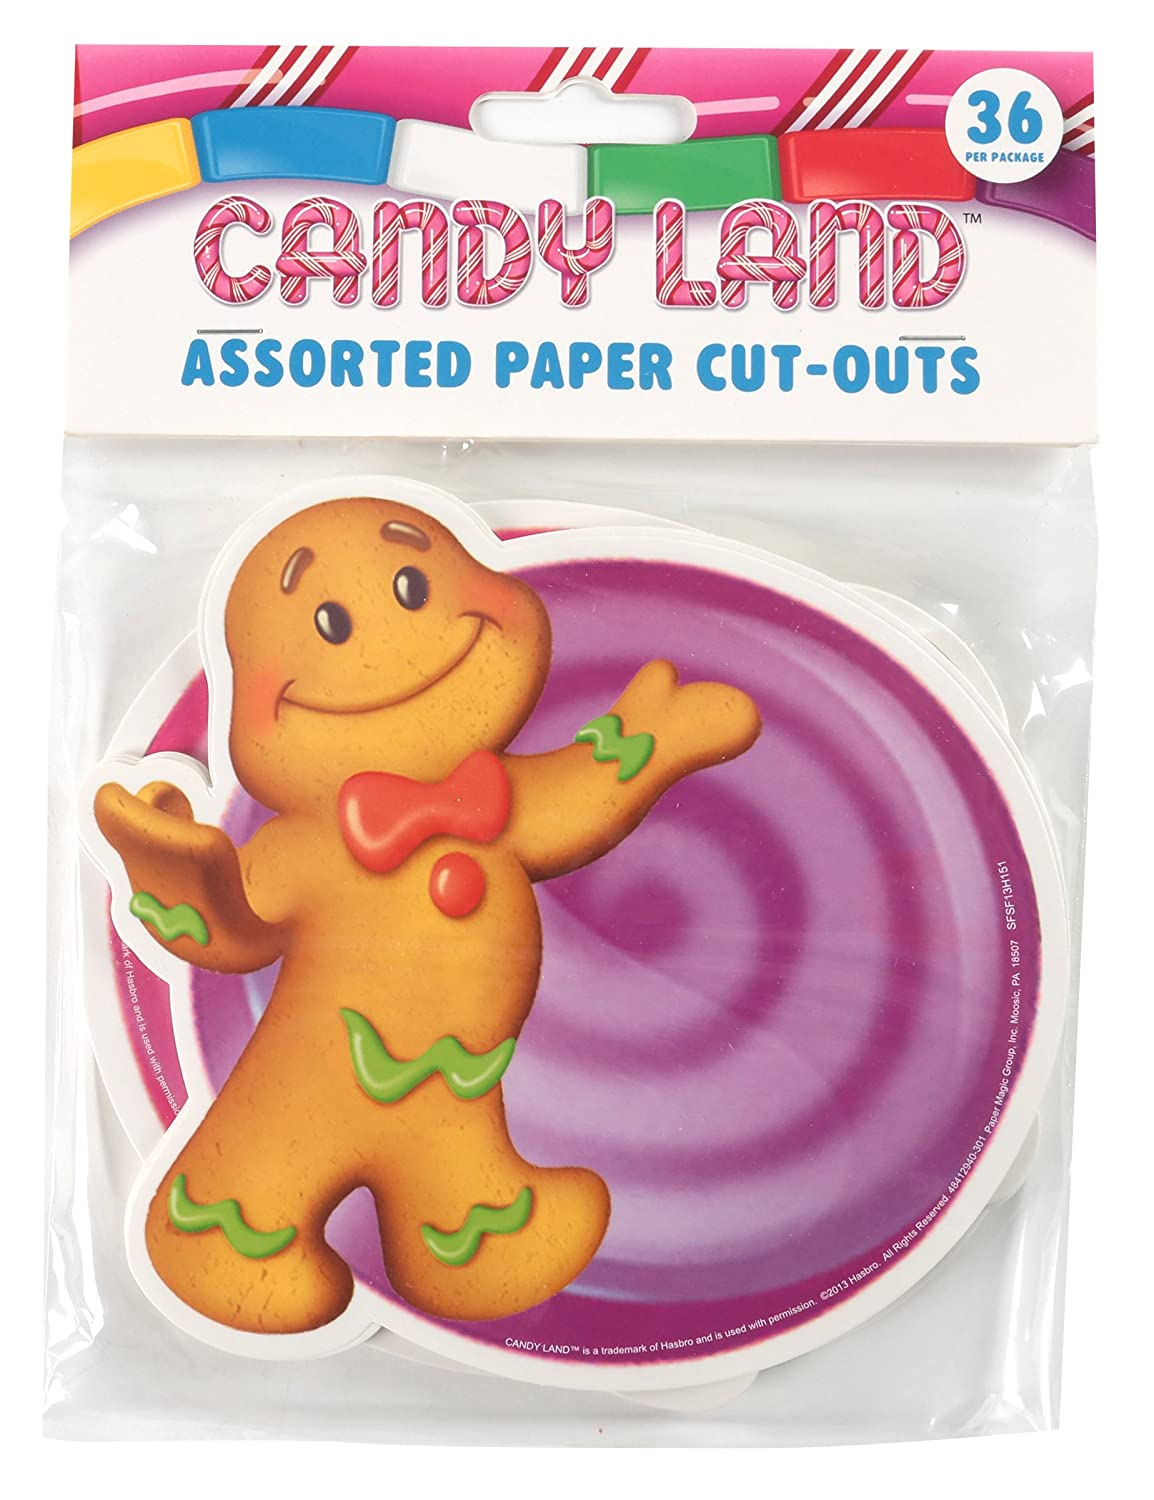 Eureka Candy Land Assorted Paper Cut-Outs, 12 Each of 3 Different Designs, 36-Piece